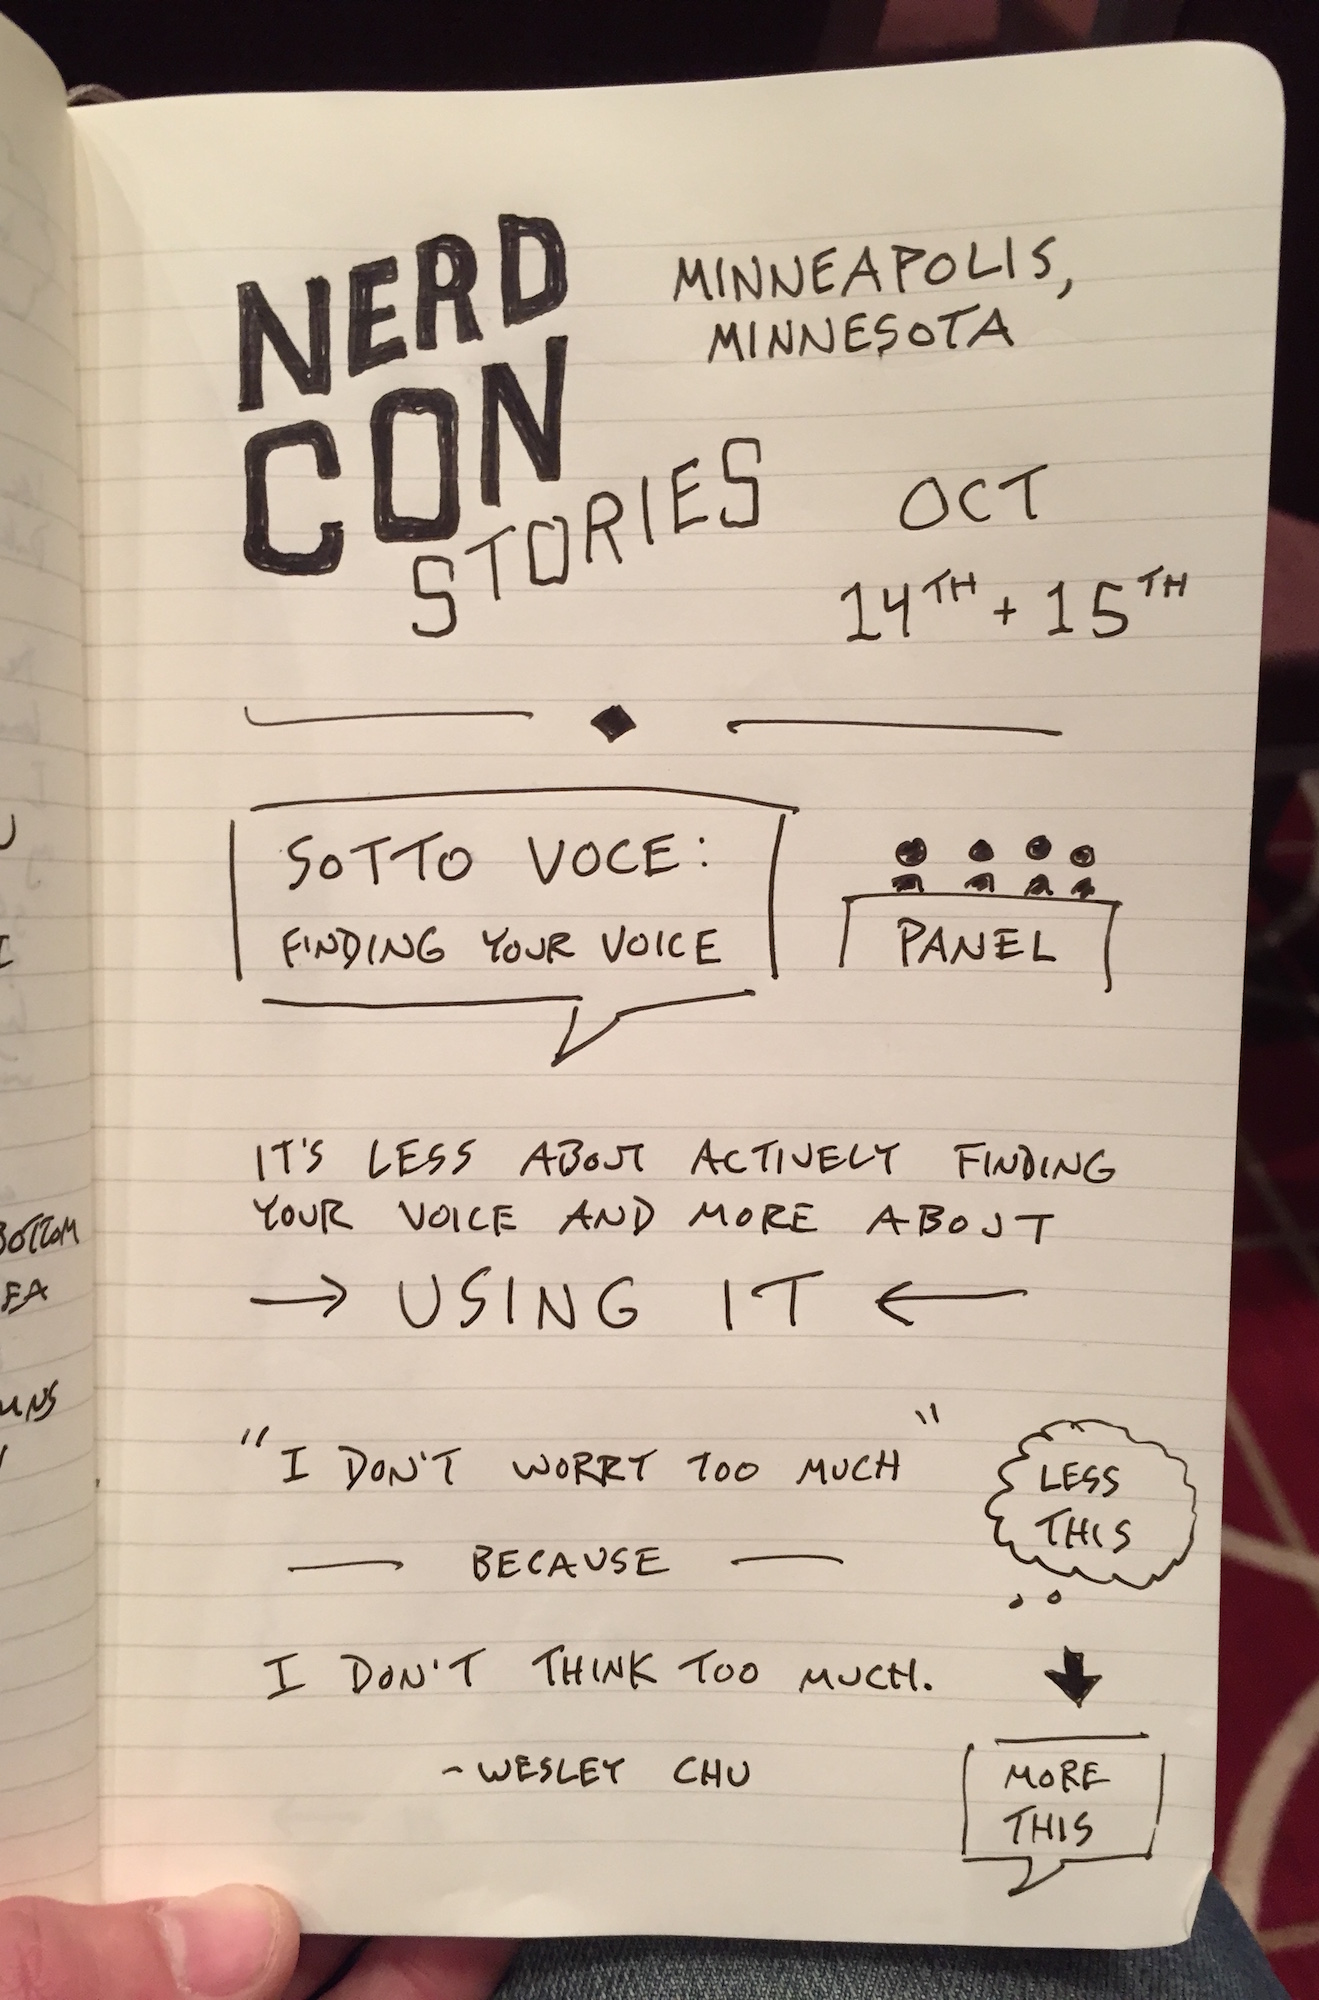 Finding Your Voice (1) - NerdCon: Stories Sketchnotes - Doug Neill